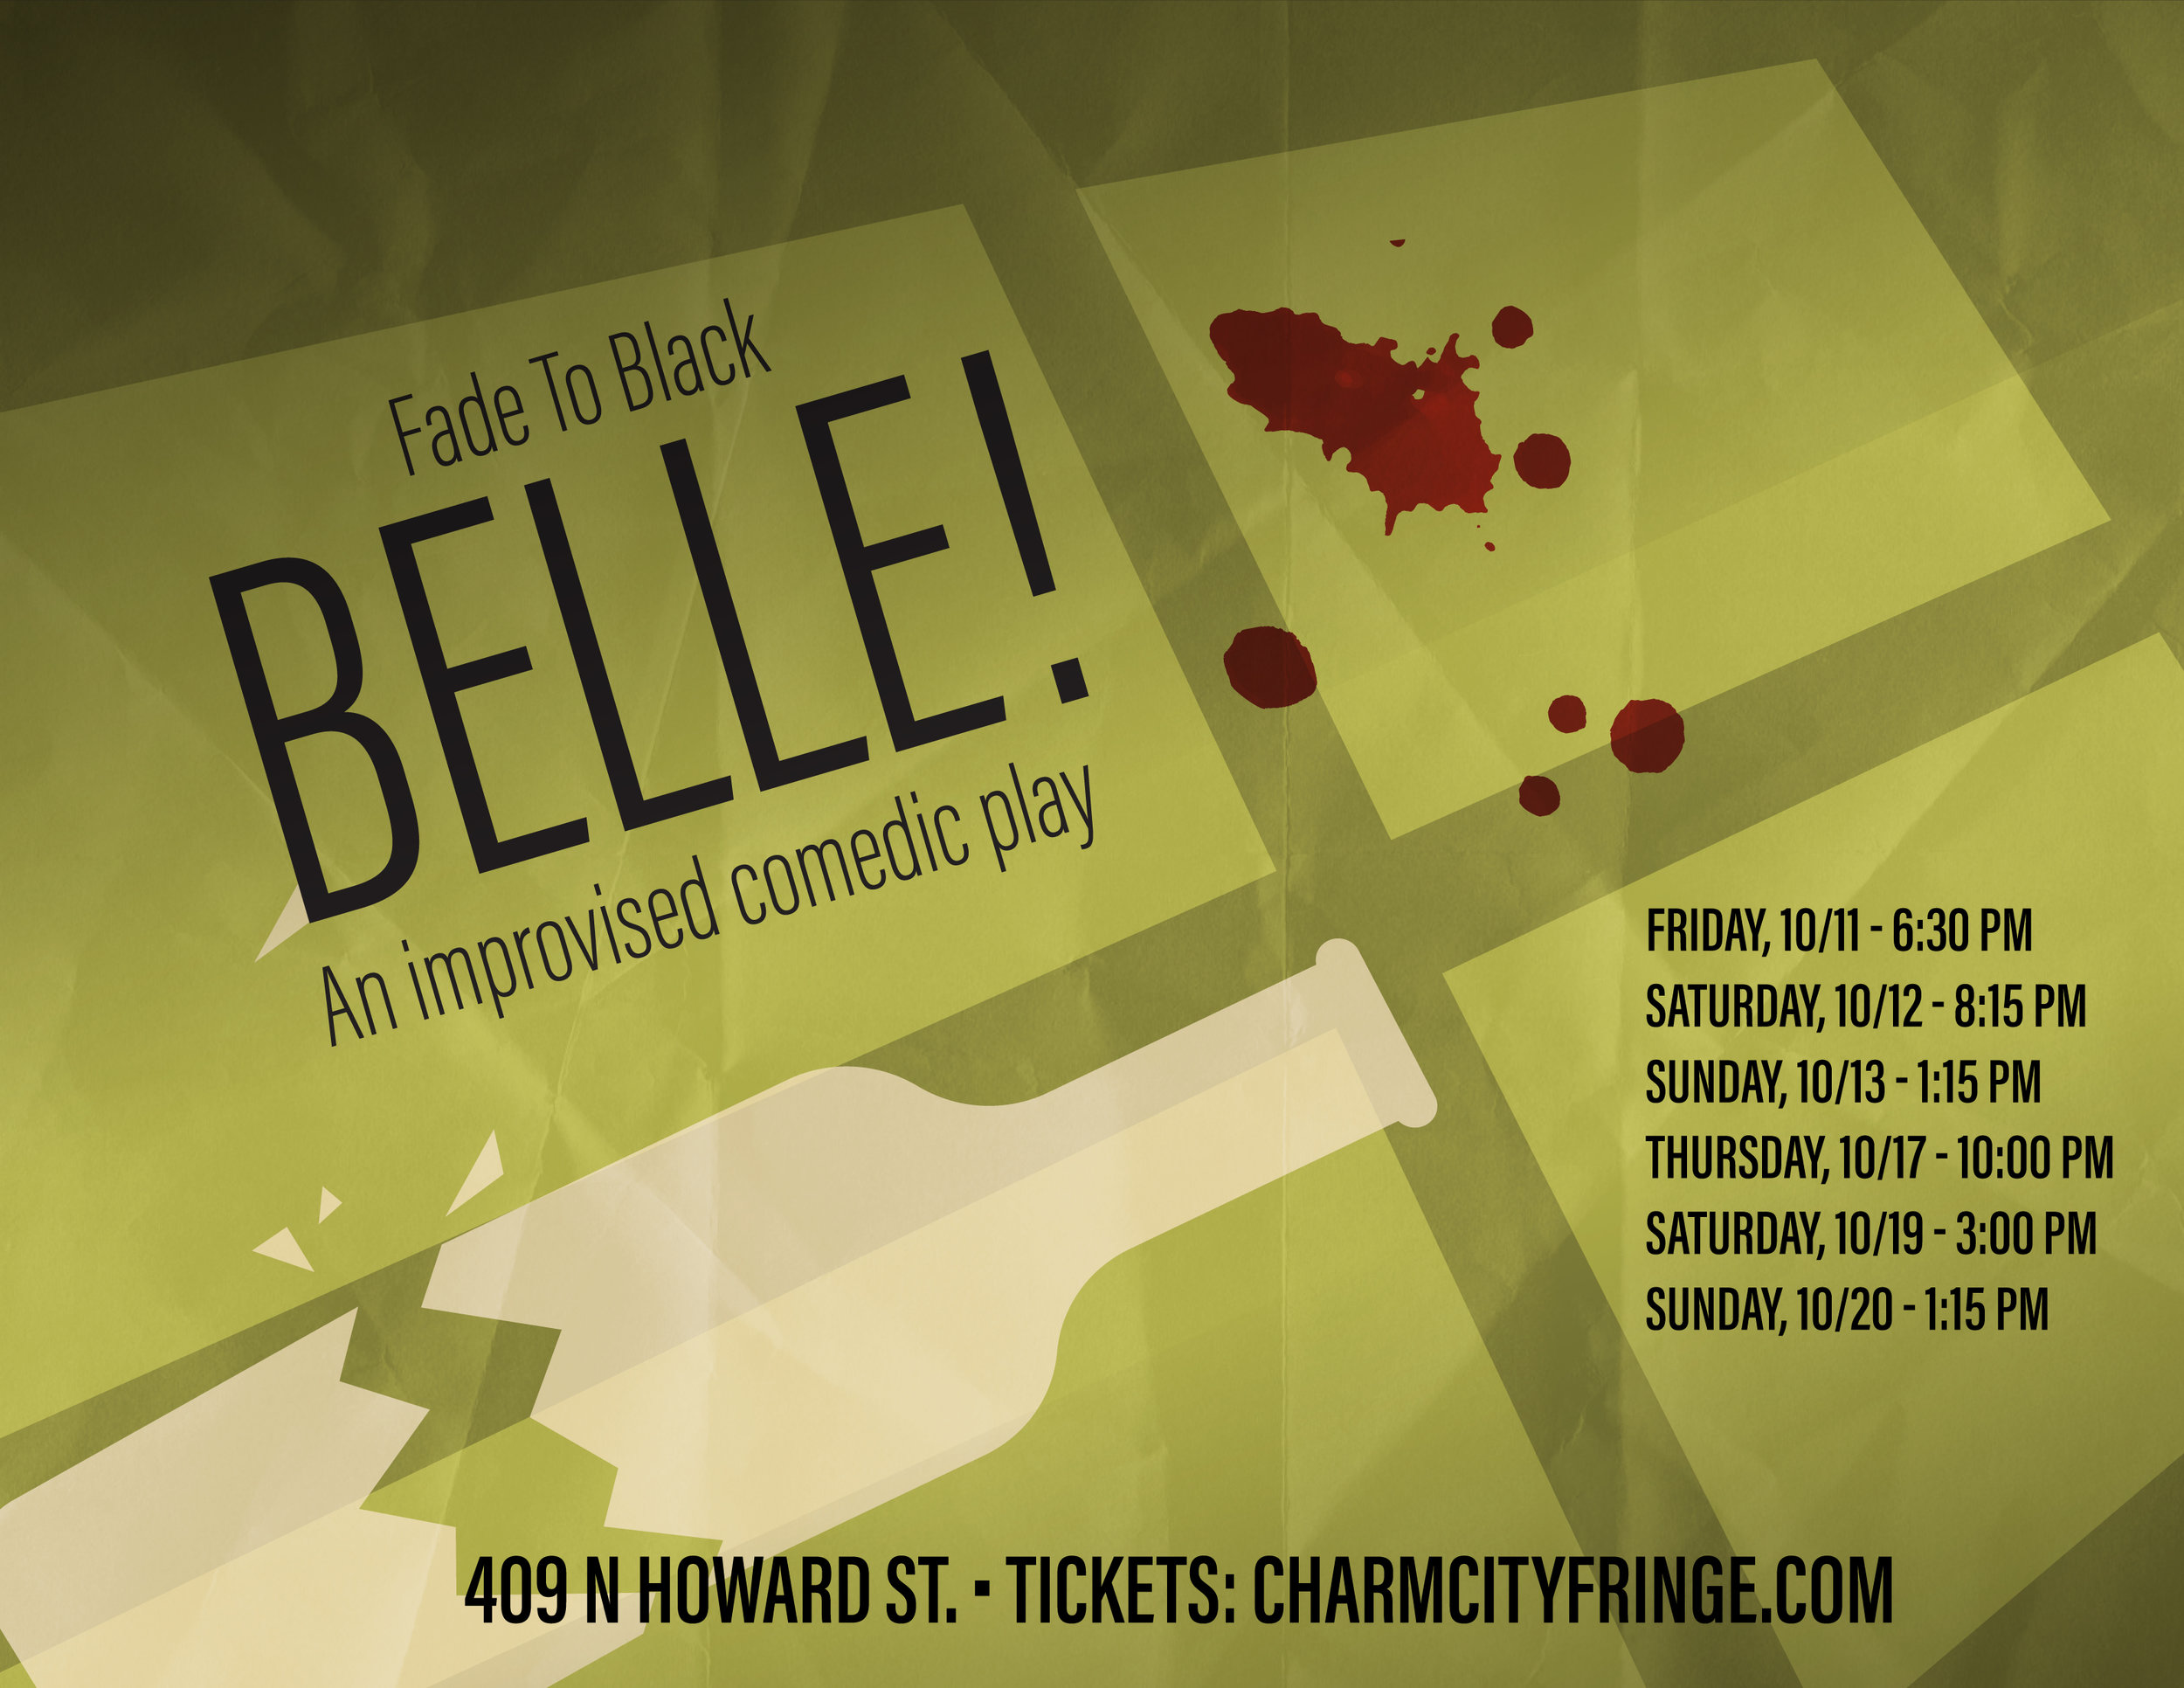 Fade To Black -  Belle! An improvised comedic play     When?    Saturday, 10/12 - 8:15 PM  Sunday, 10/13 - 1:15 PM  Thursday, 10/17 - 10:00 PM  Saturday, 10/19 - 3:00 PM  Sunday, 10/20 - 1:15 PM    Where?  Current Space  421 N Howard St